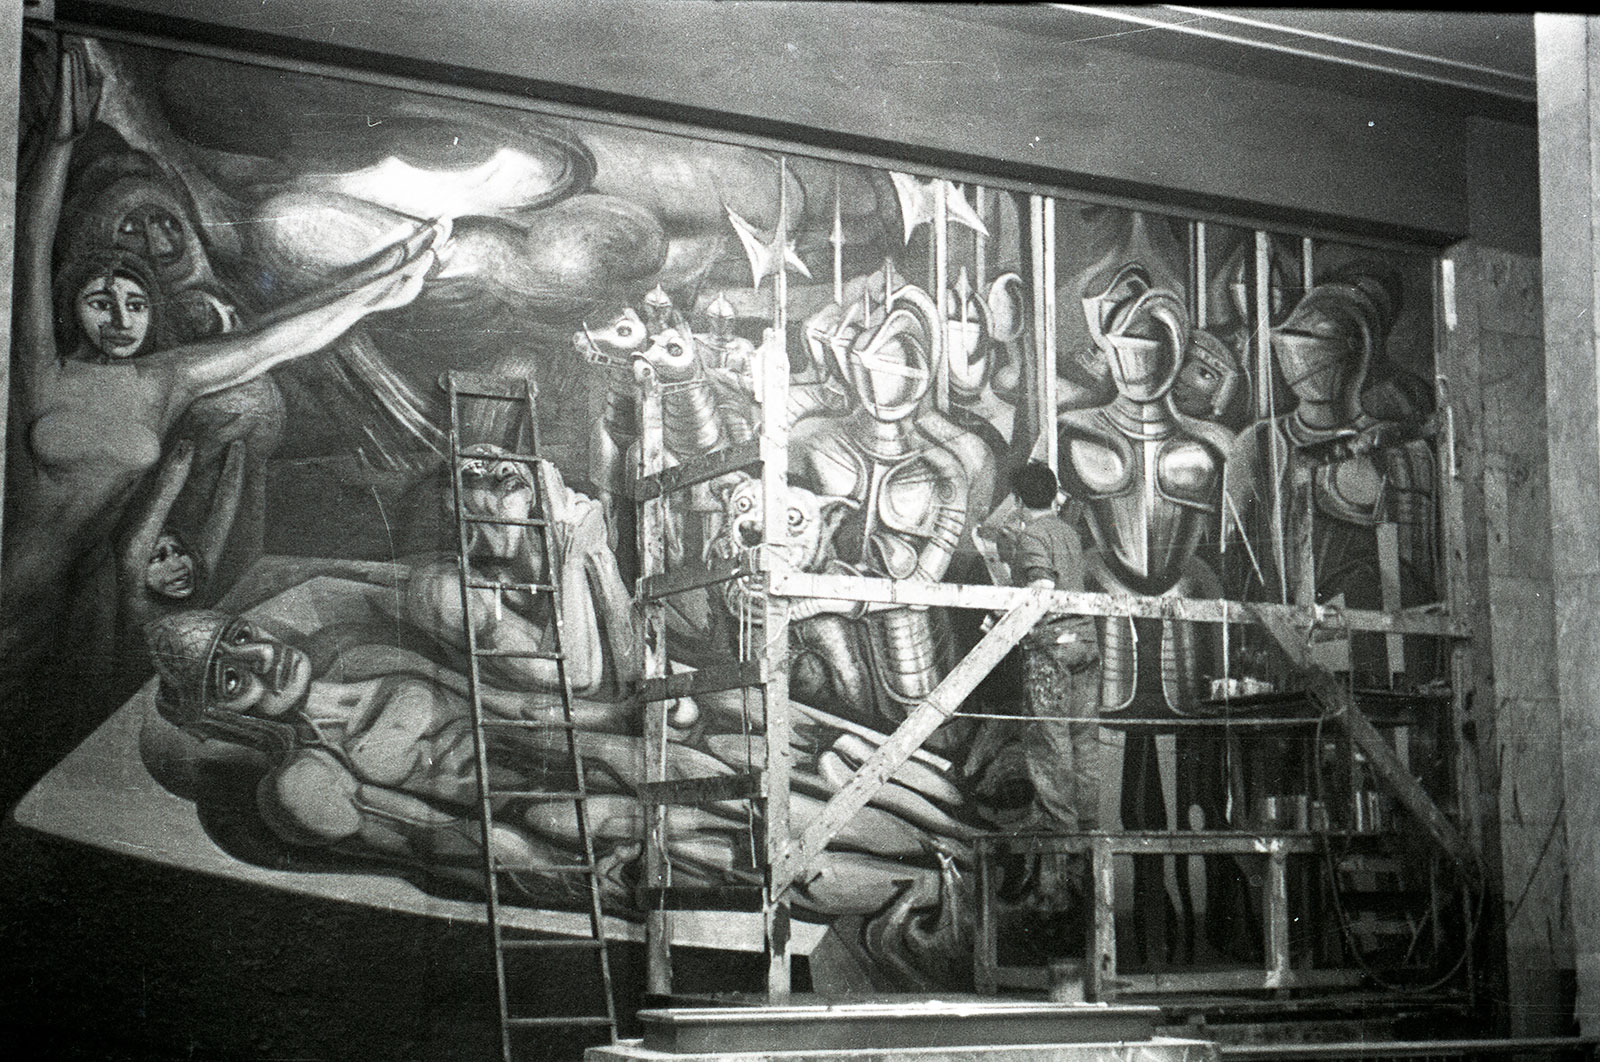 Artist David Siqueiros working on a giant wall mural, black and white photo